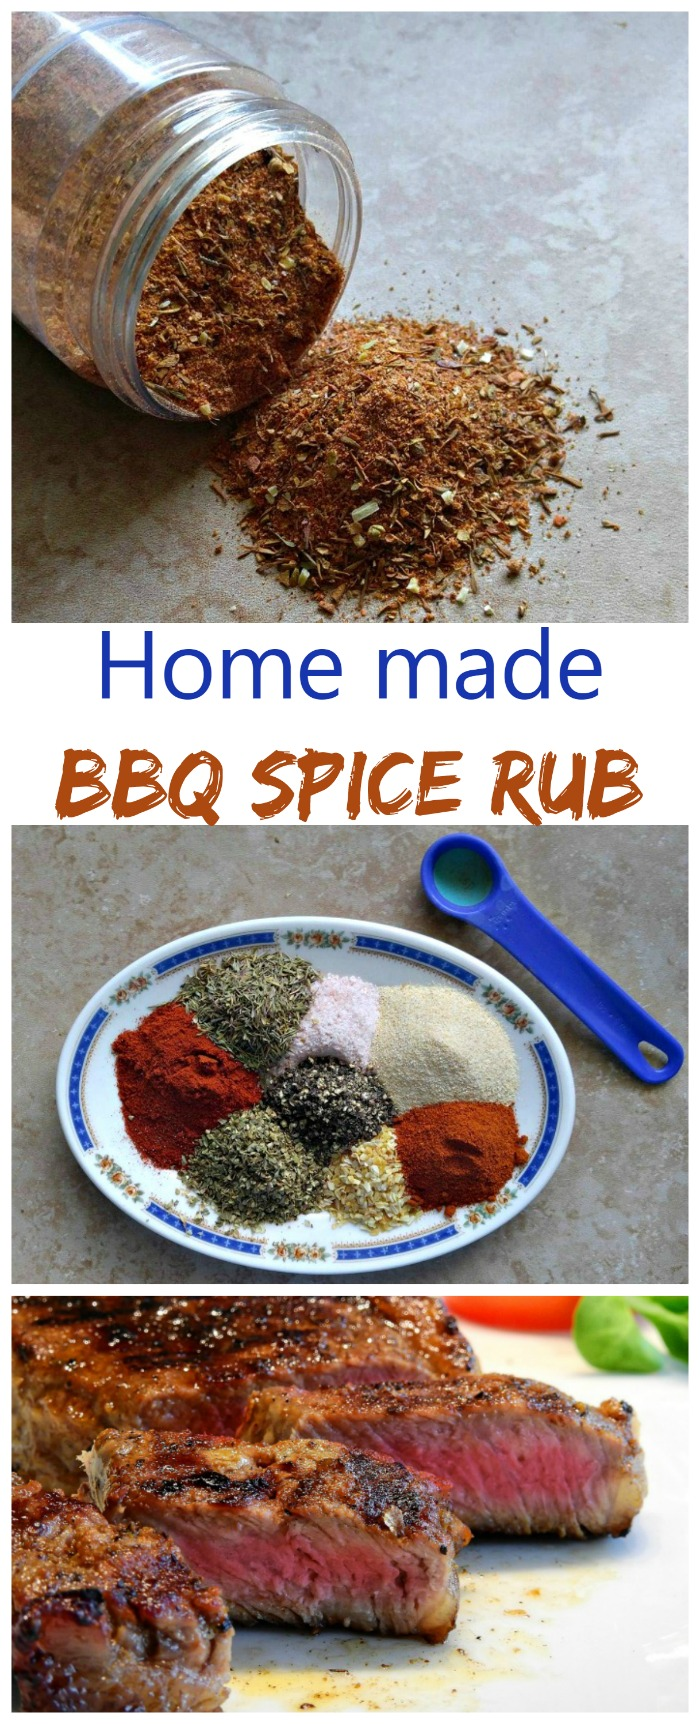 This spice rub is simple to make and makes any meat taste great on the grill. Make some today!